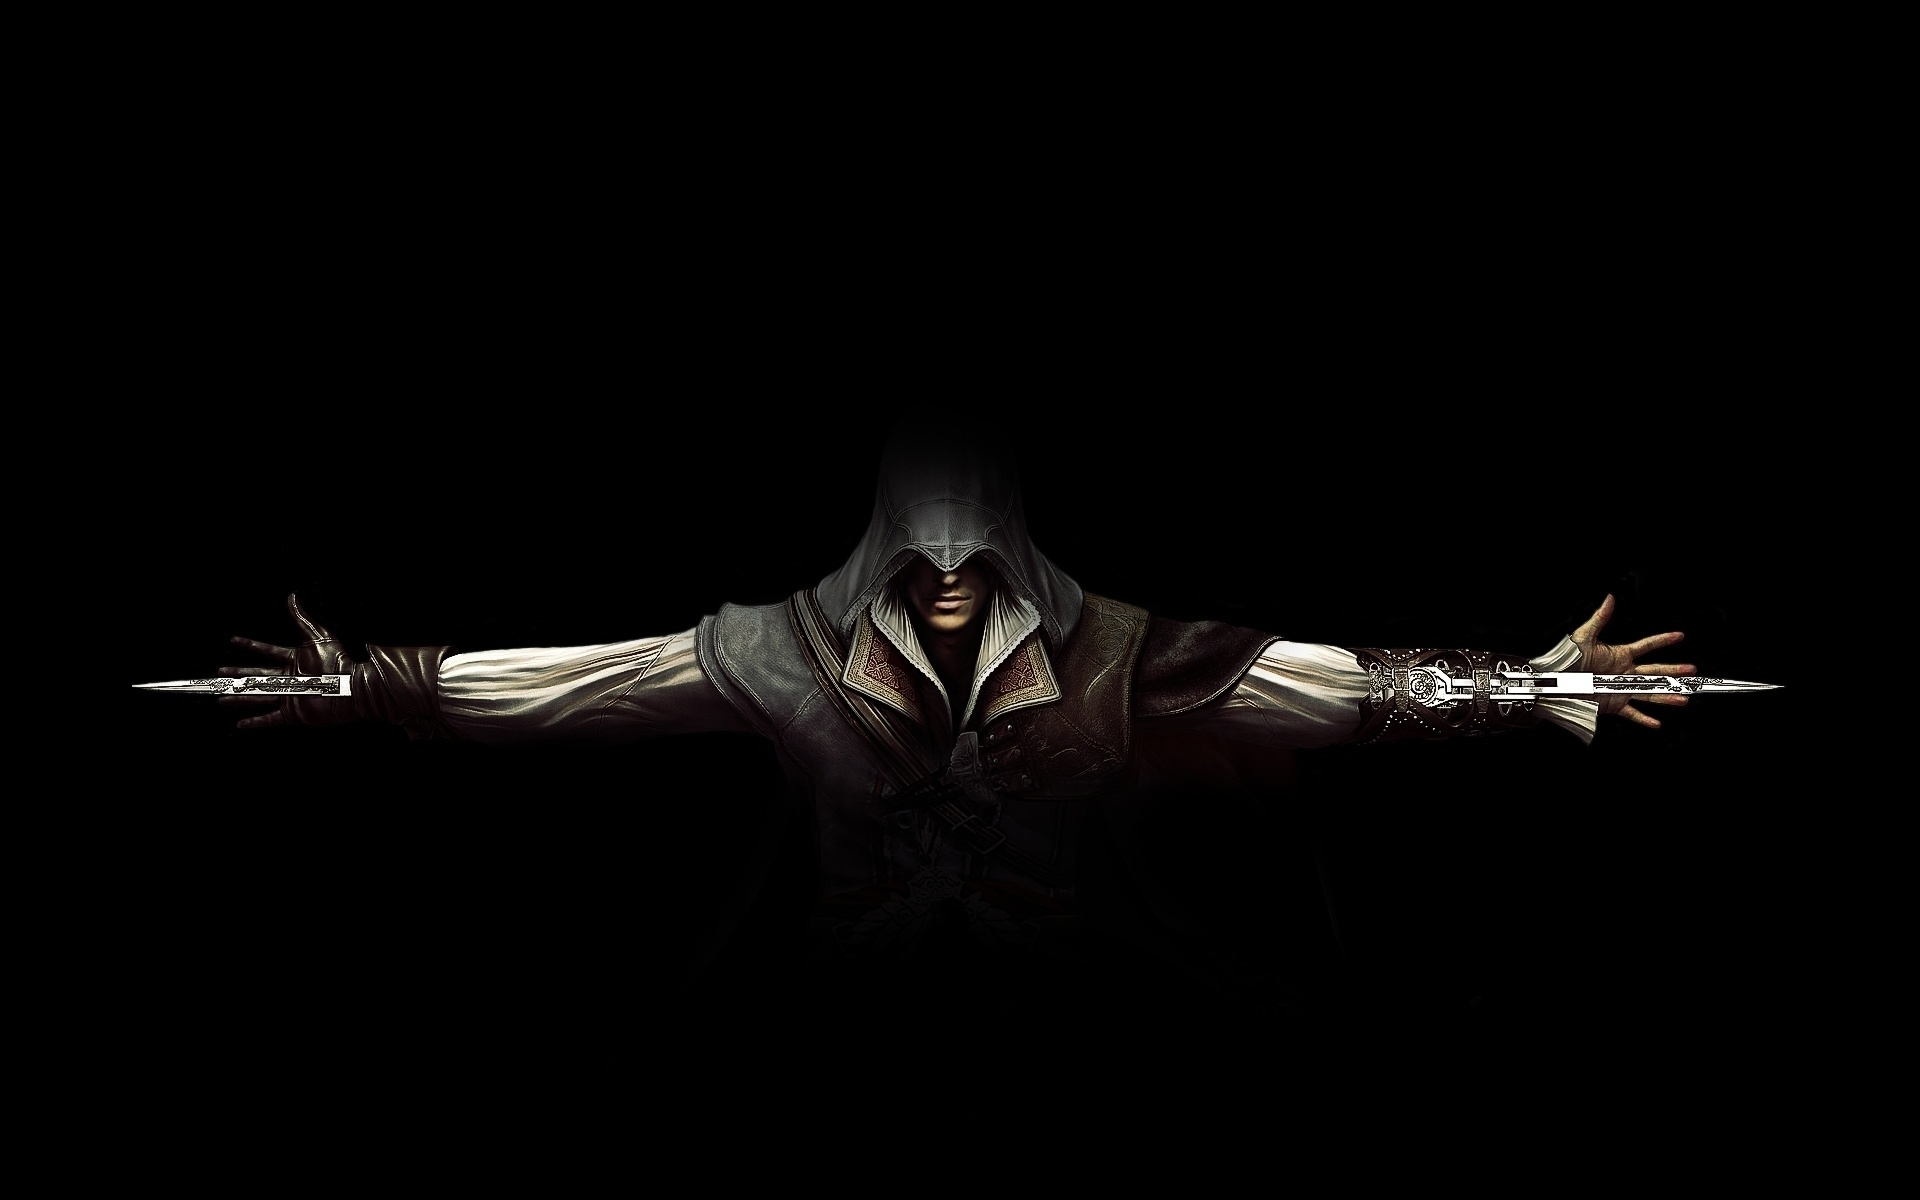 37294 download wallpaper Assassin's Creed, Games screensavers and pictures for free